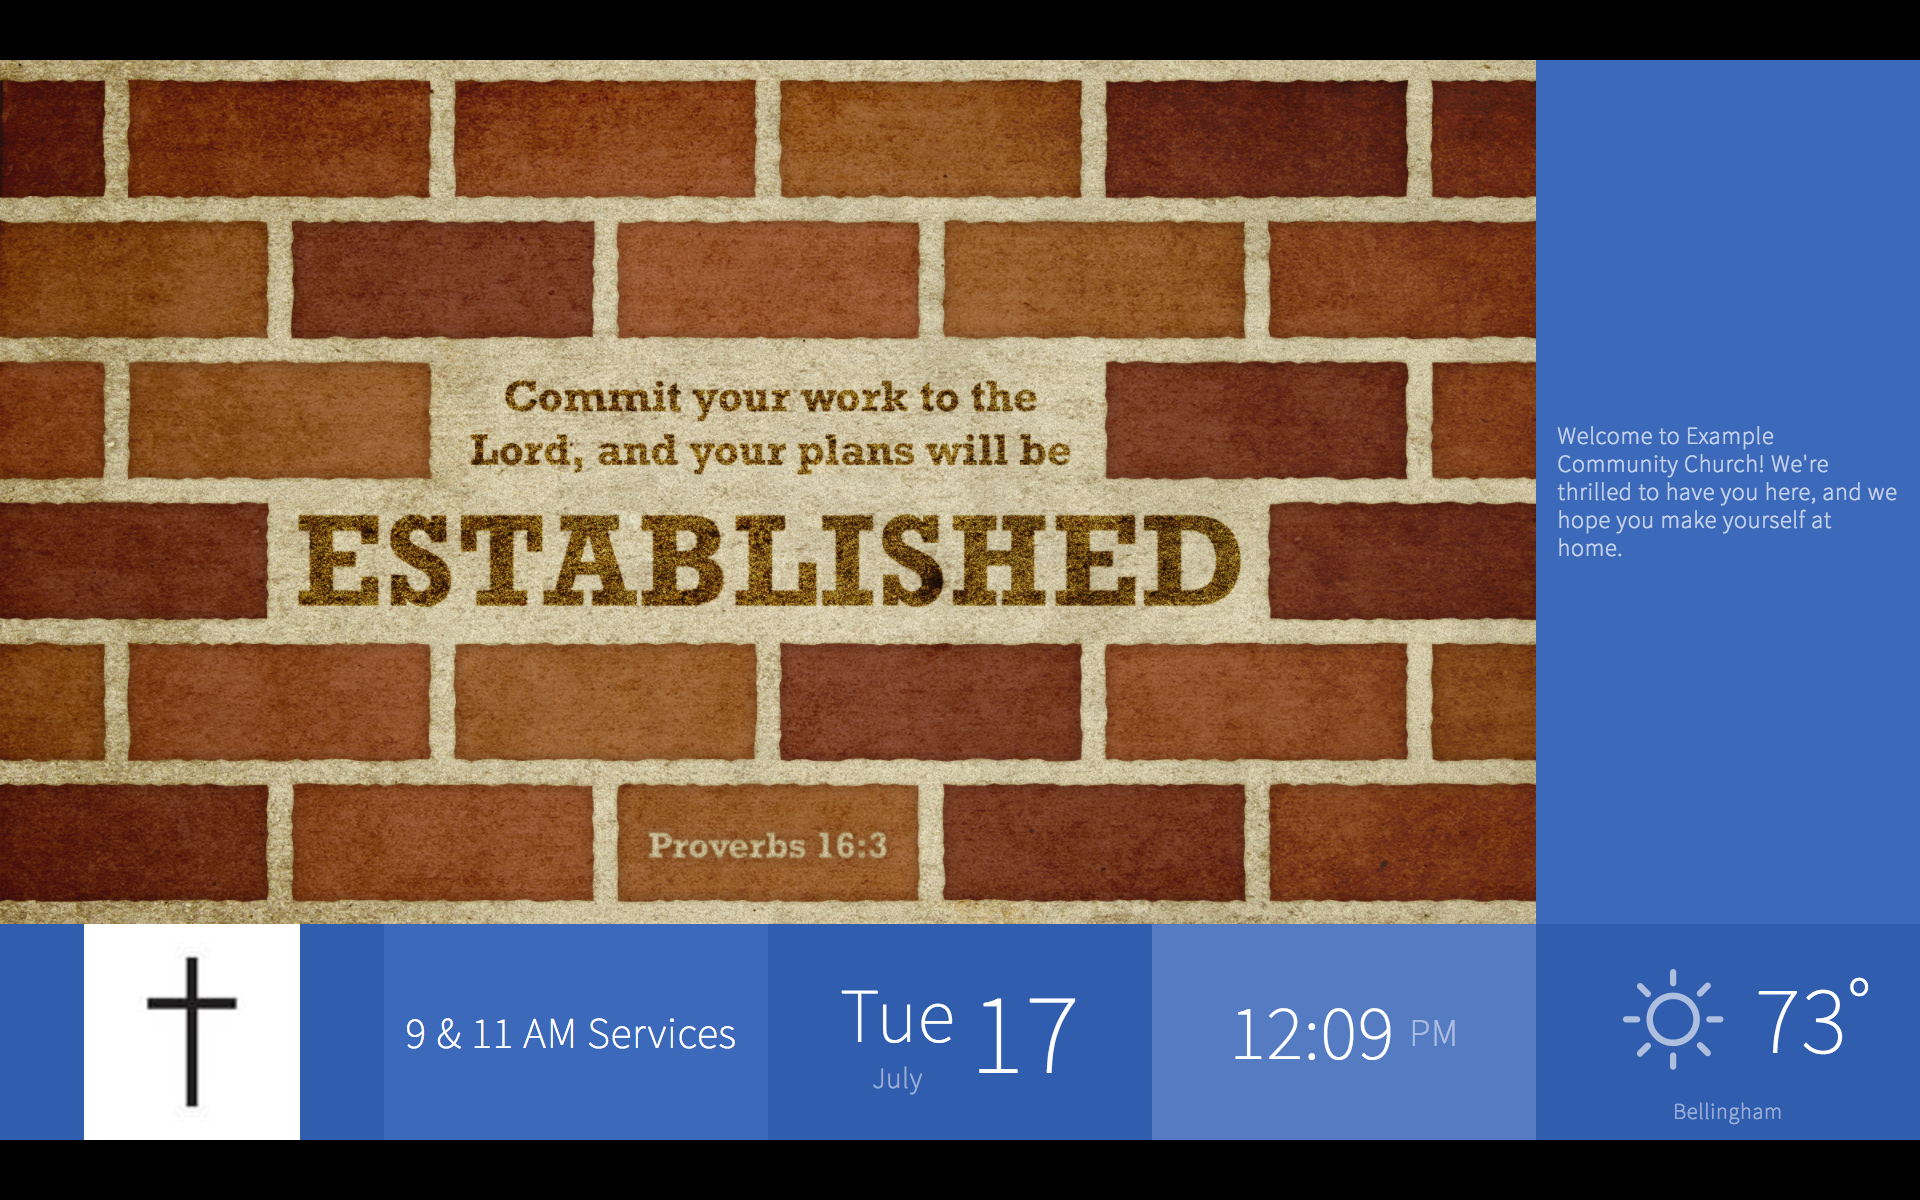 example of church digital signage showing a Bible verse